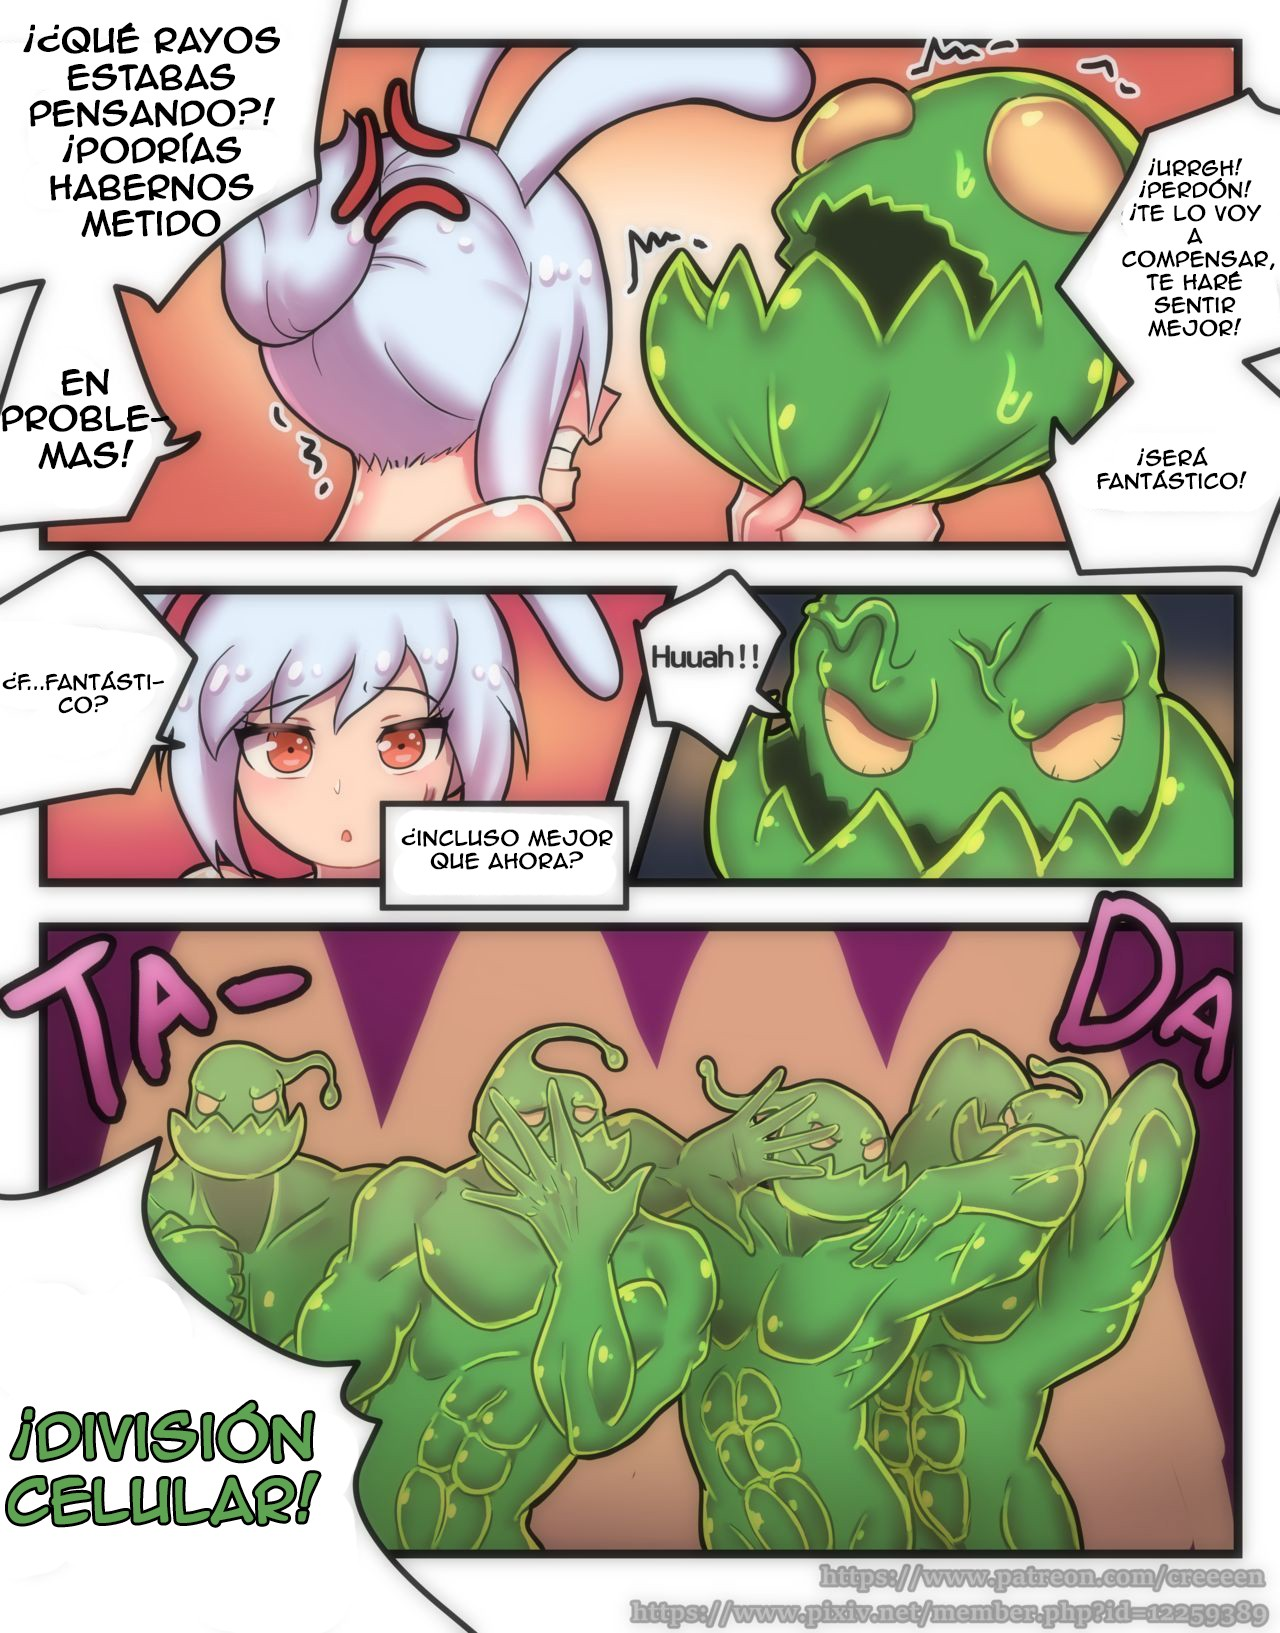 Rabbit-Jelly-LoL-Hentai-15.jpg